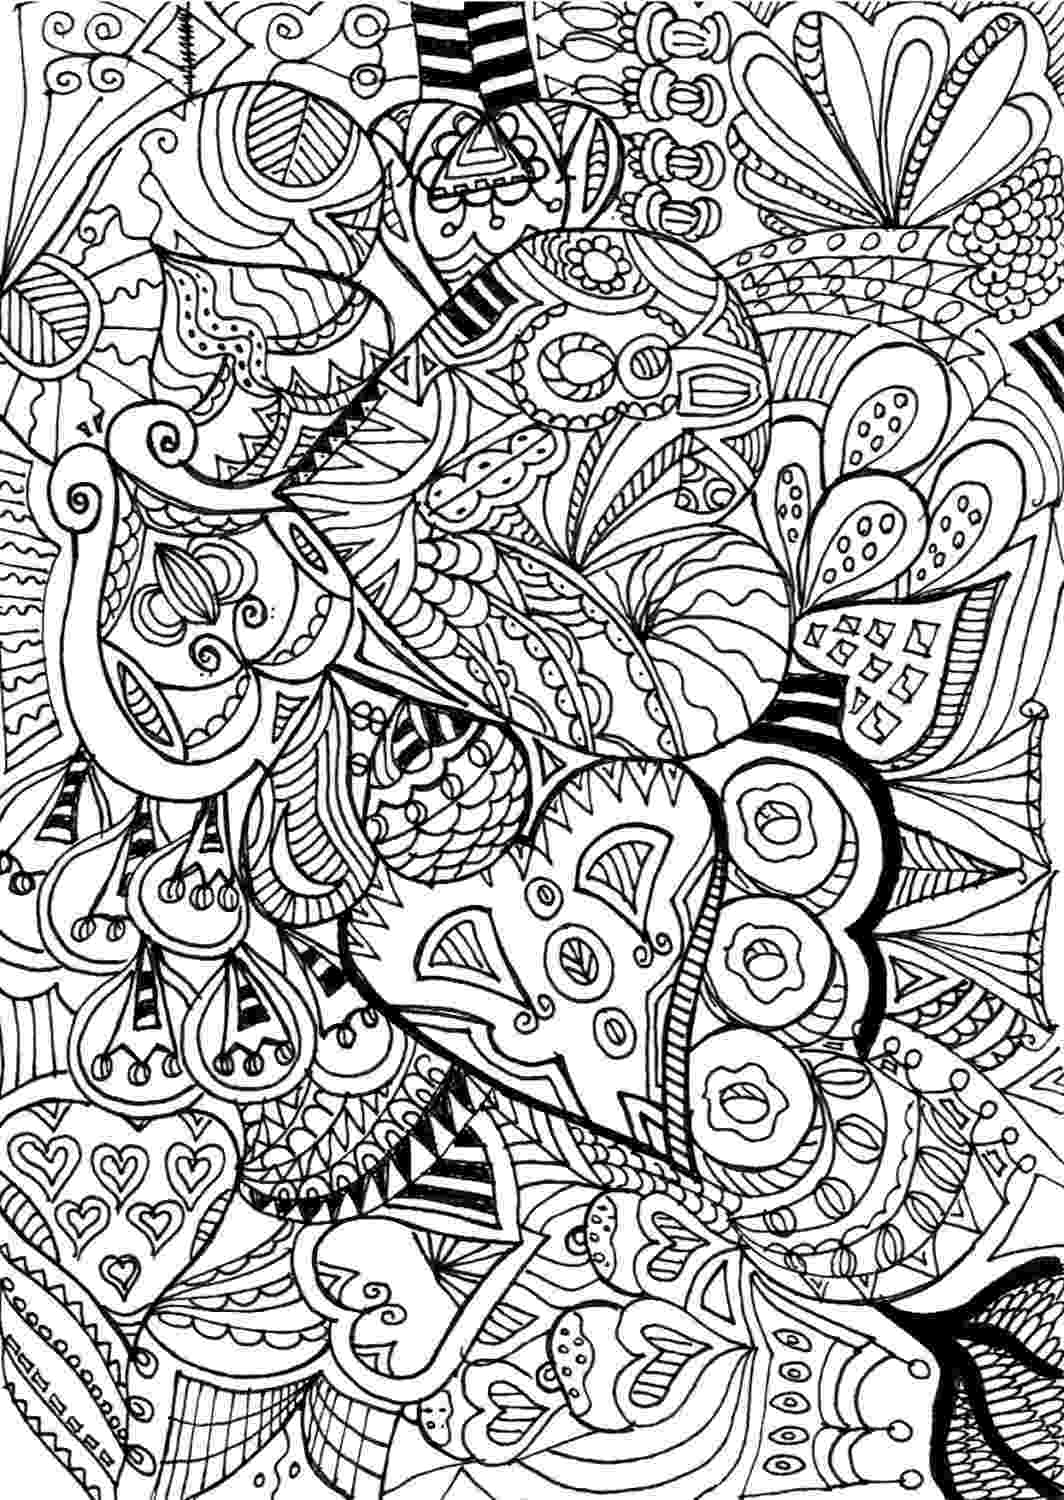 colouring pages zentangle zentangle coloring pages cat sketch coloring page zentangle colouring pages